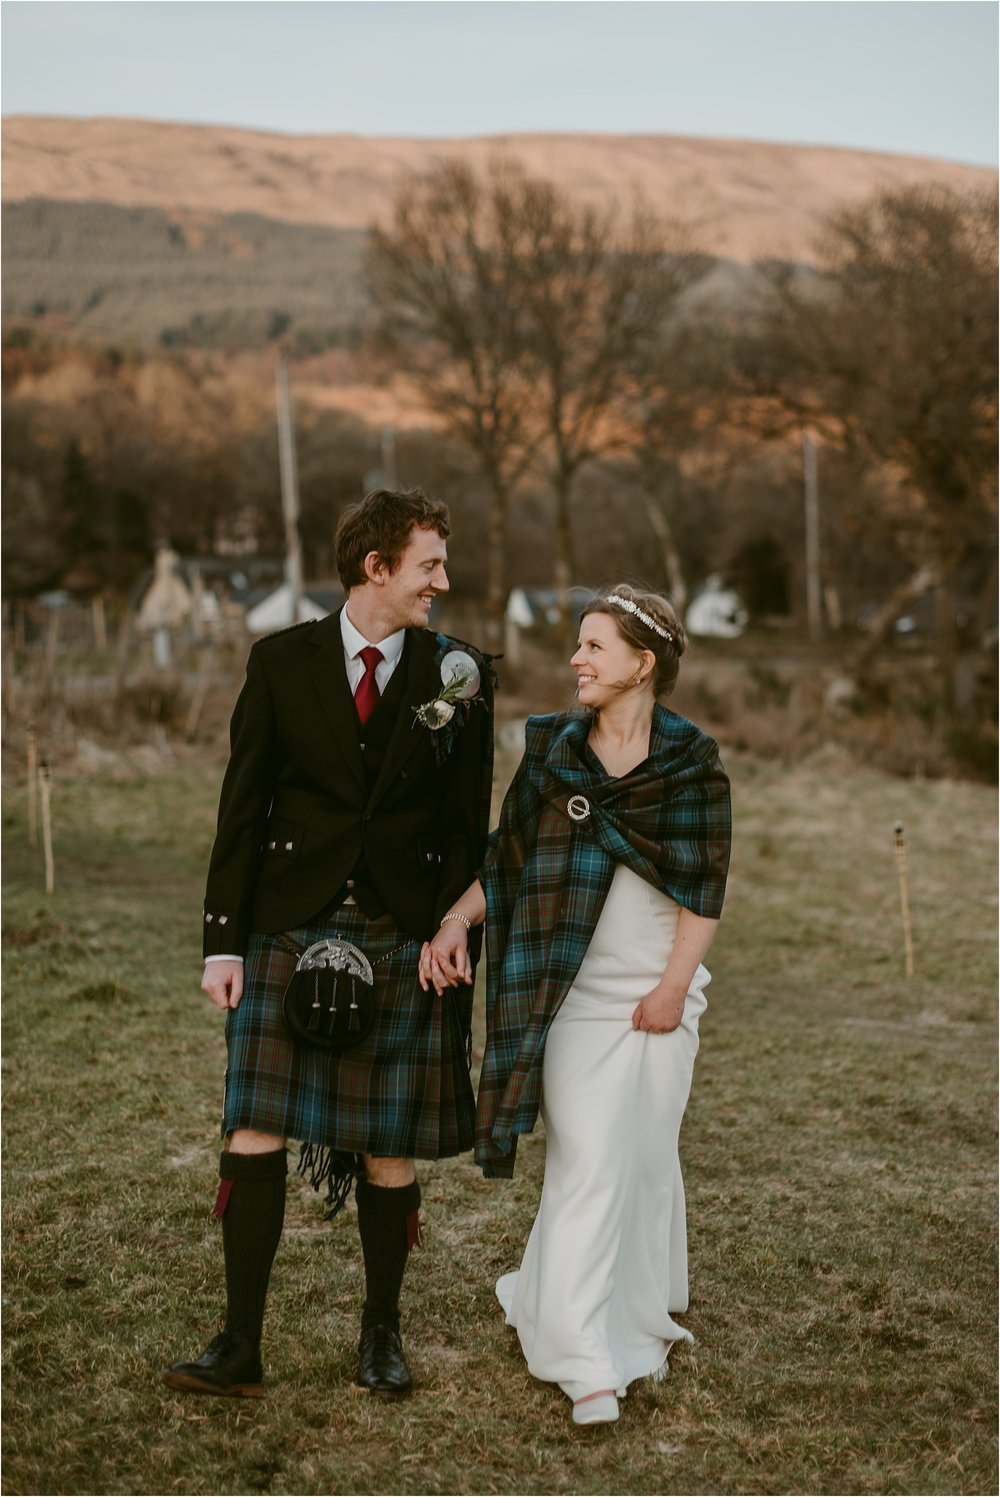 Kinlochard-village-hall-scottish-wedding-claire-fleck-photography__0099.jpg